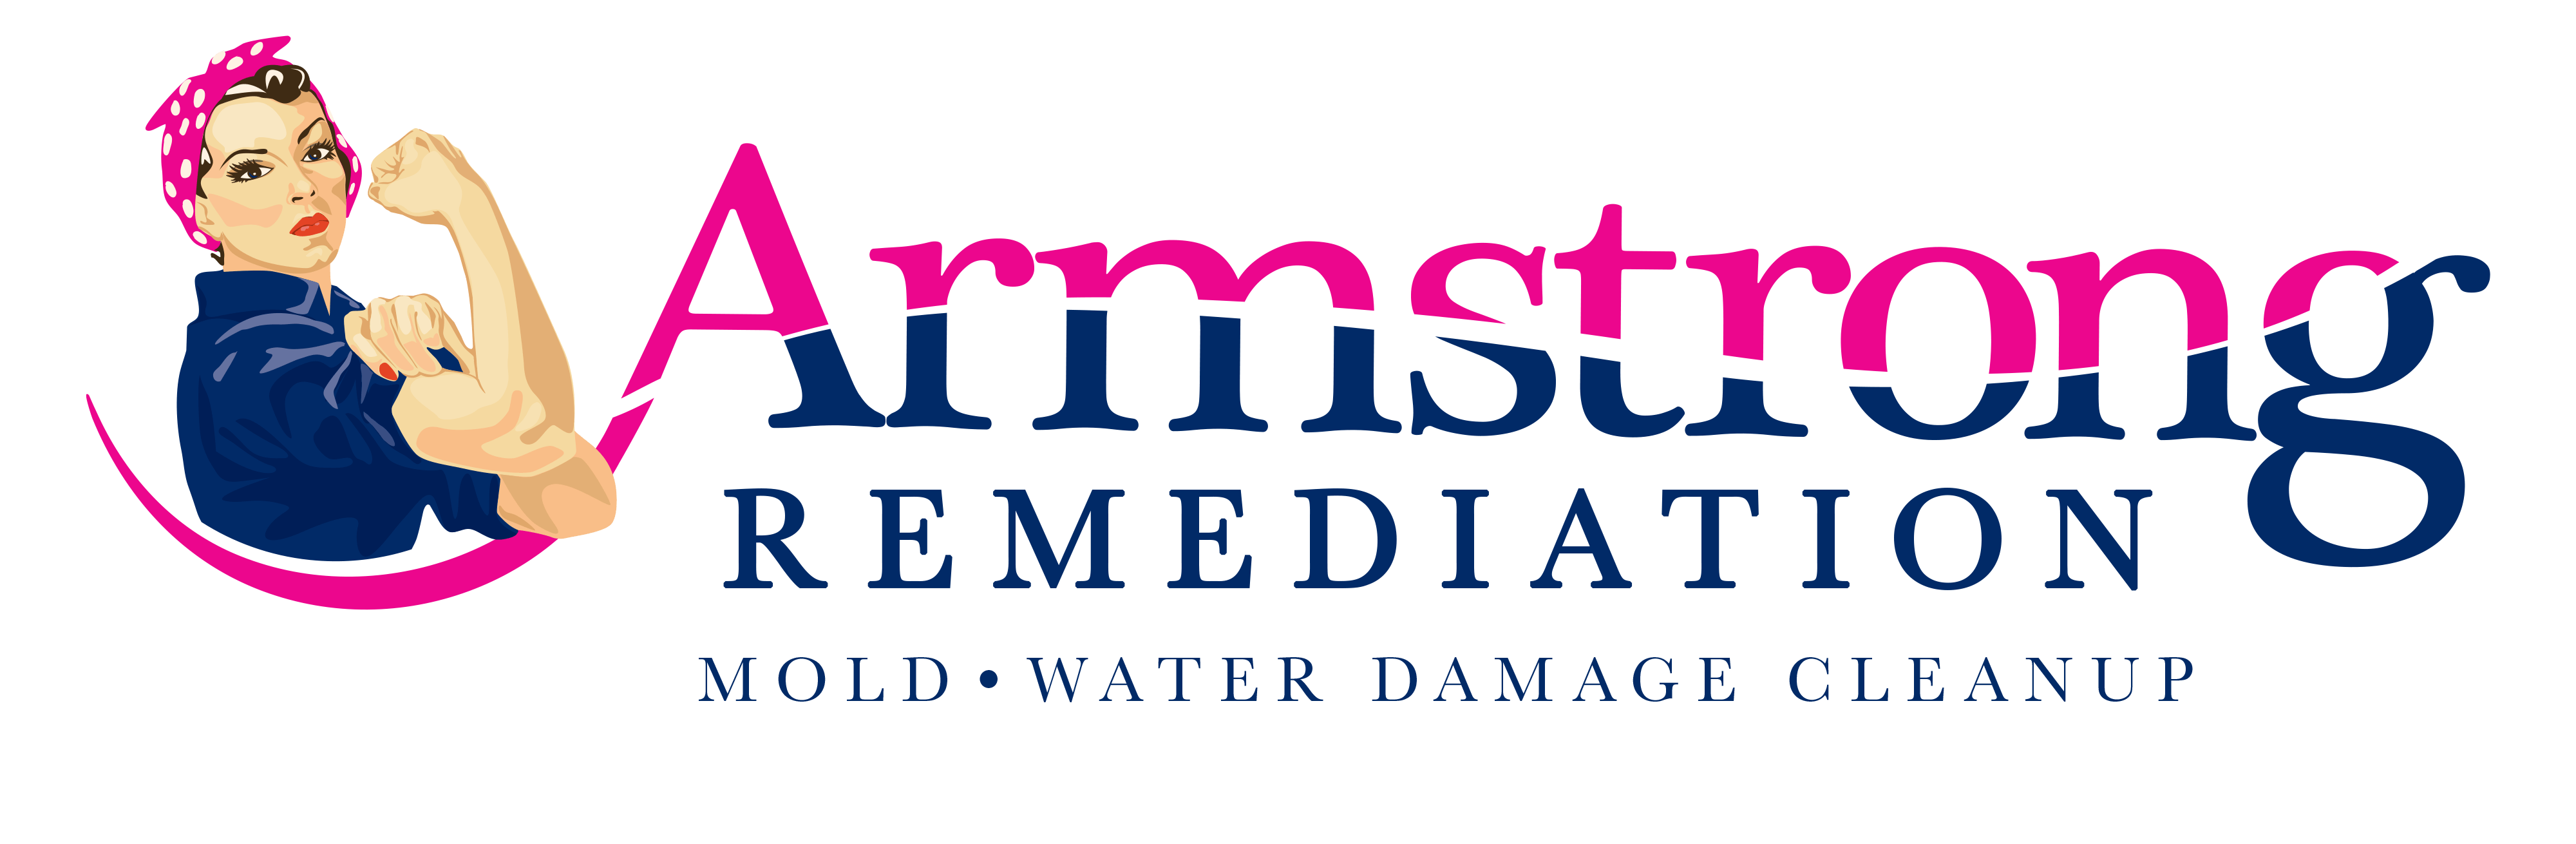 Armstrong Remediation